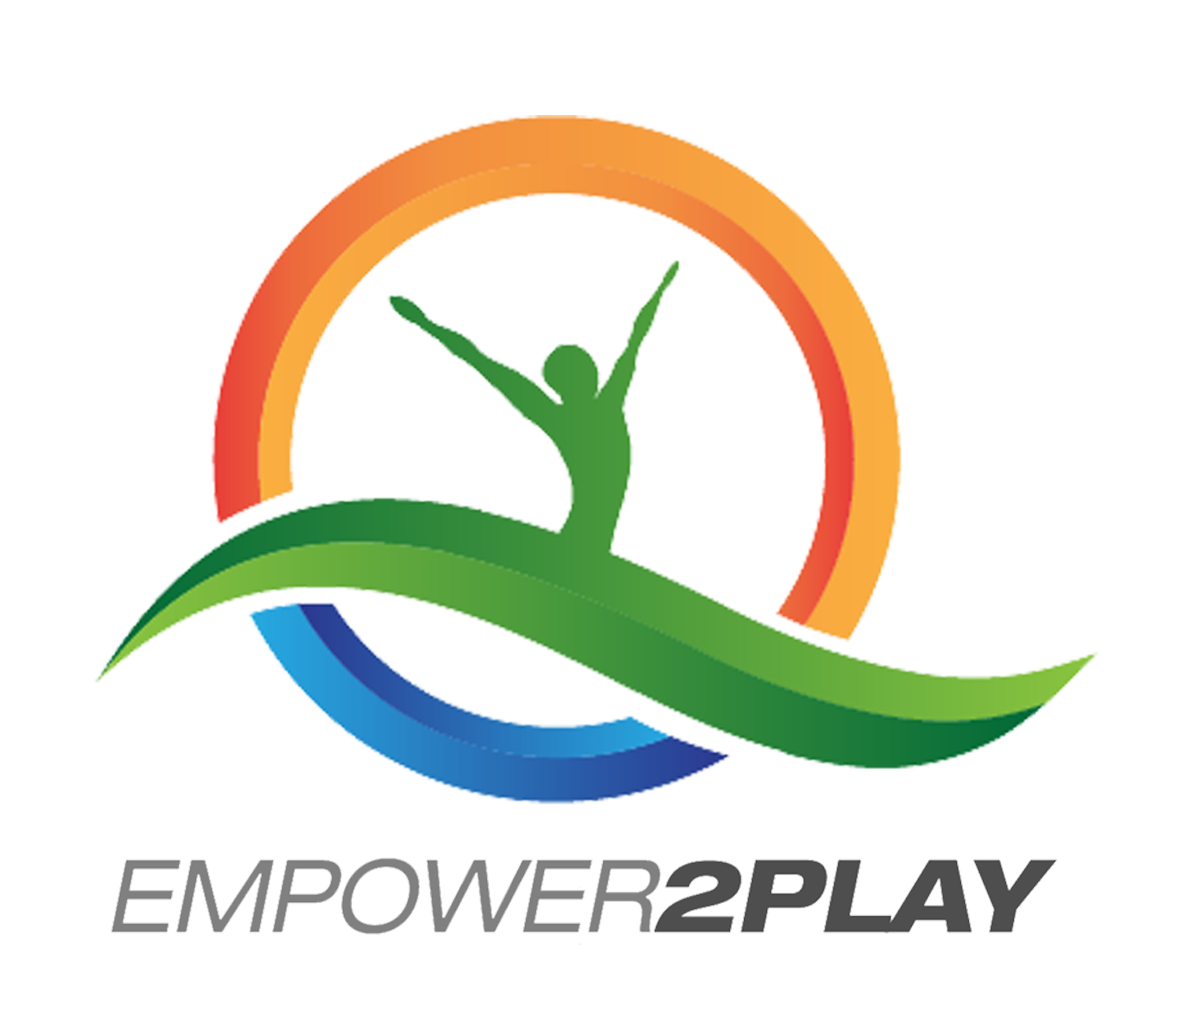 Empower2Play